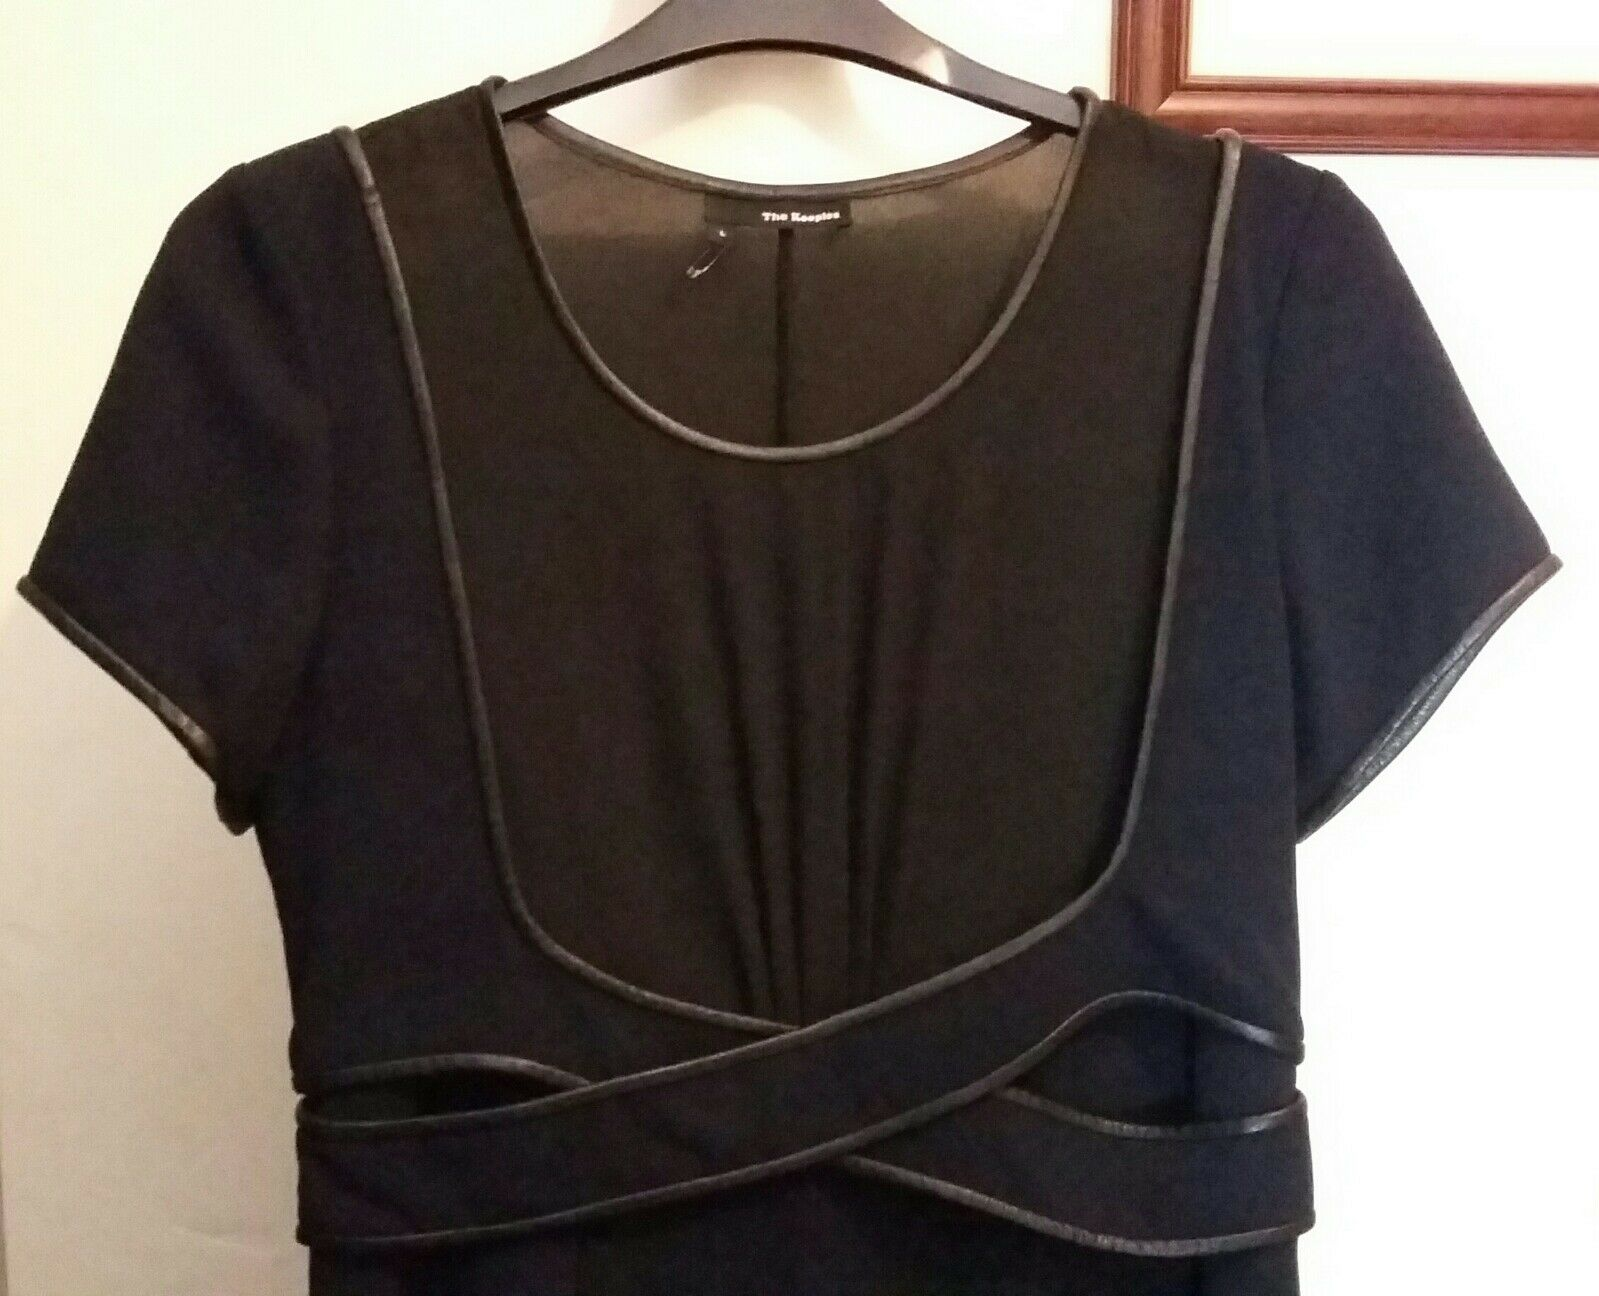 89a0c0e55ac The Kooples Leather Trim Crepe Two-toned Dress Navy / Black Size UK 12 for sale  online | eBay